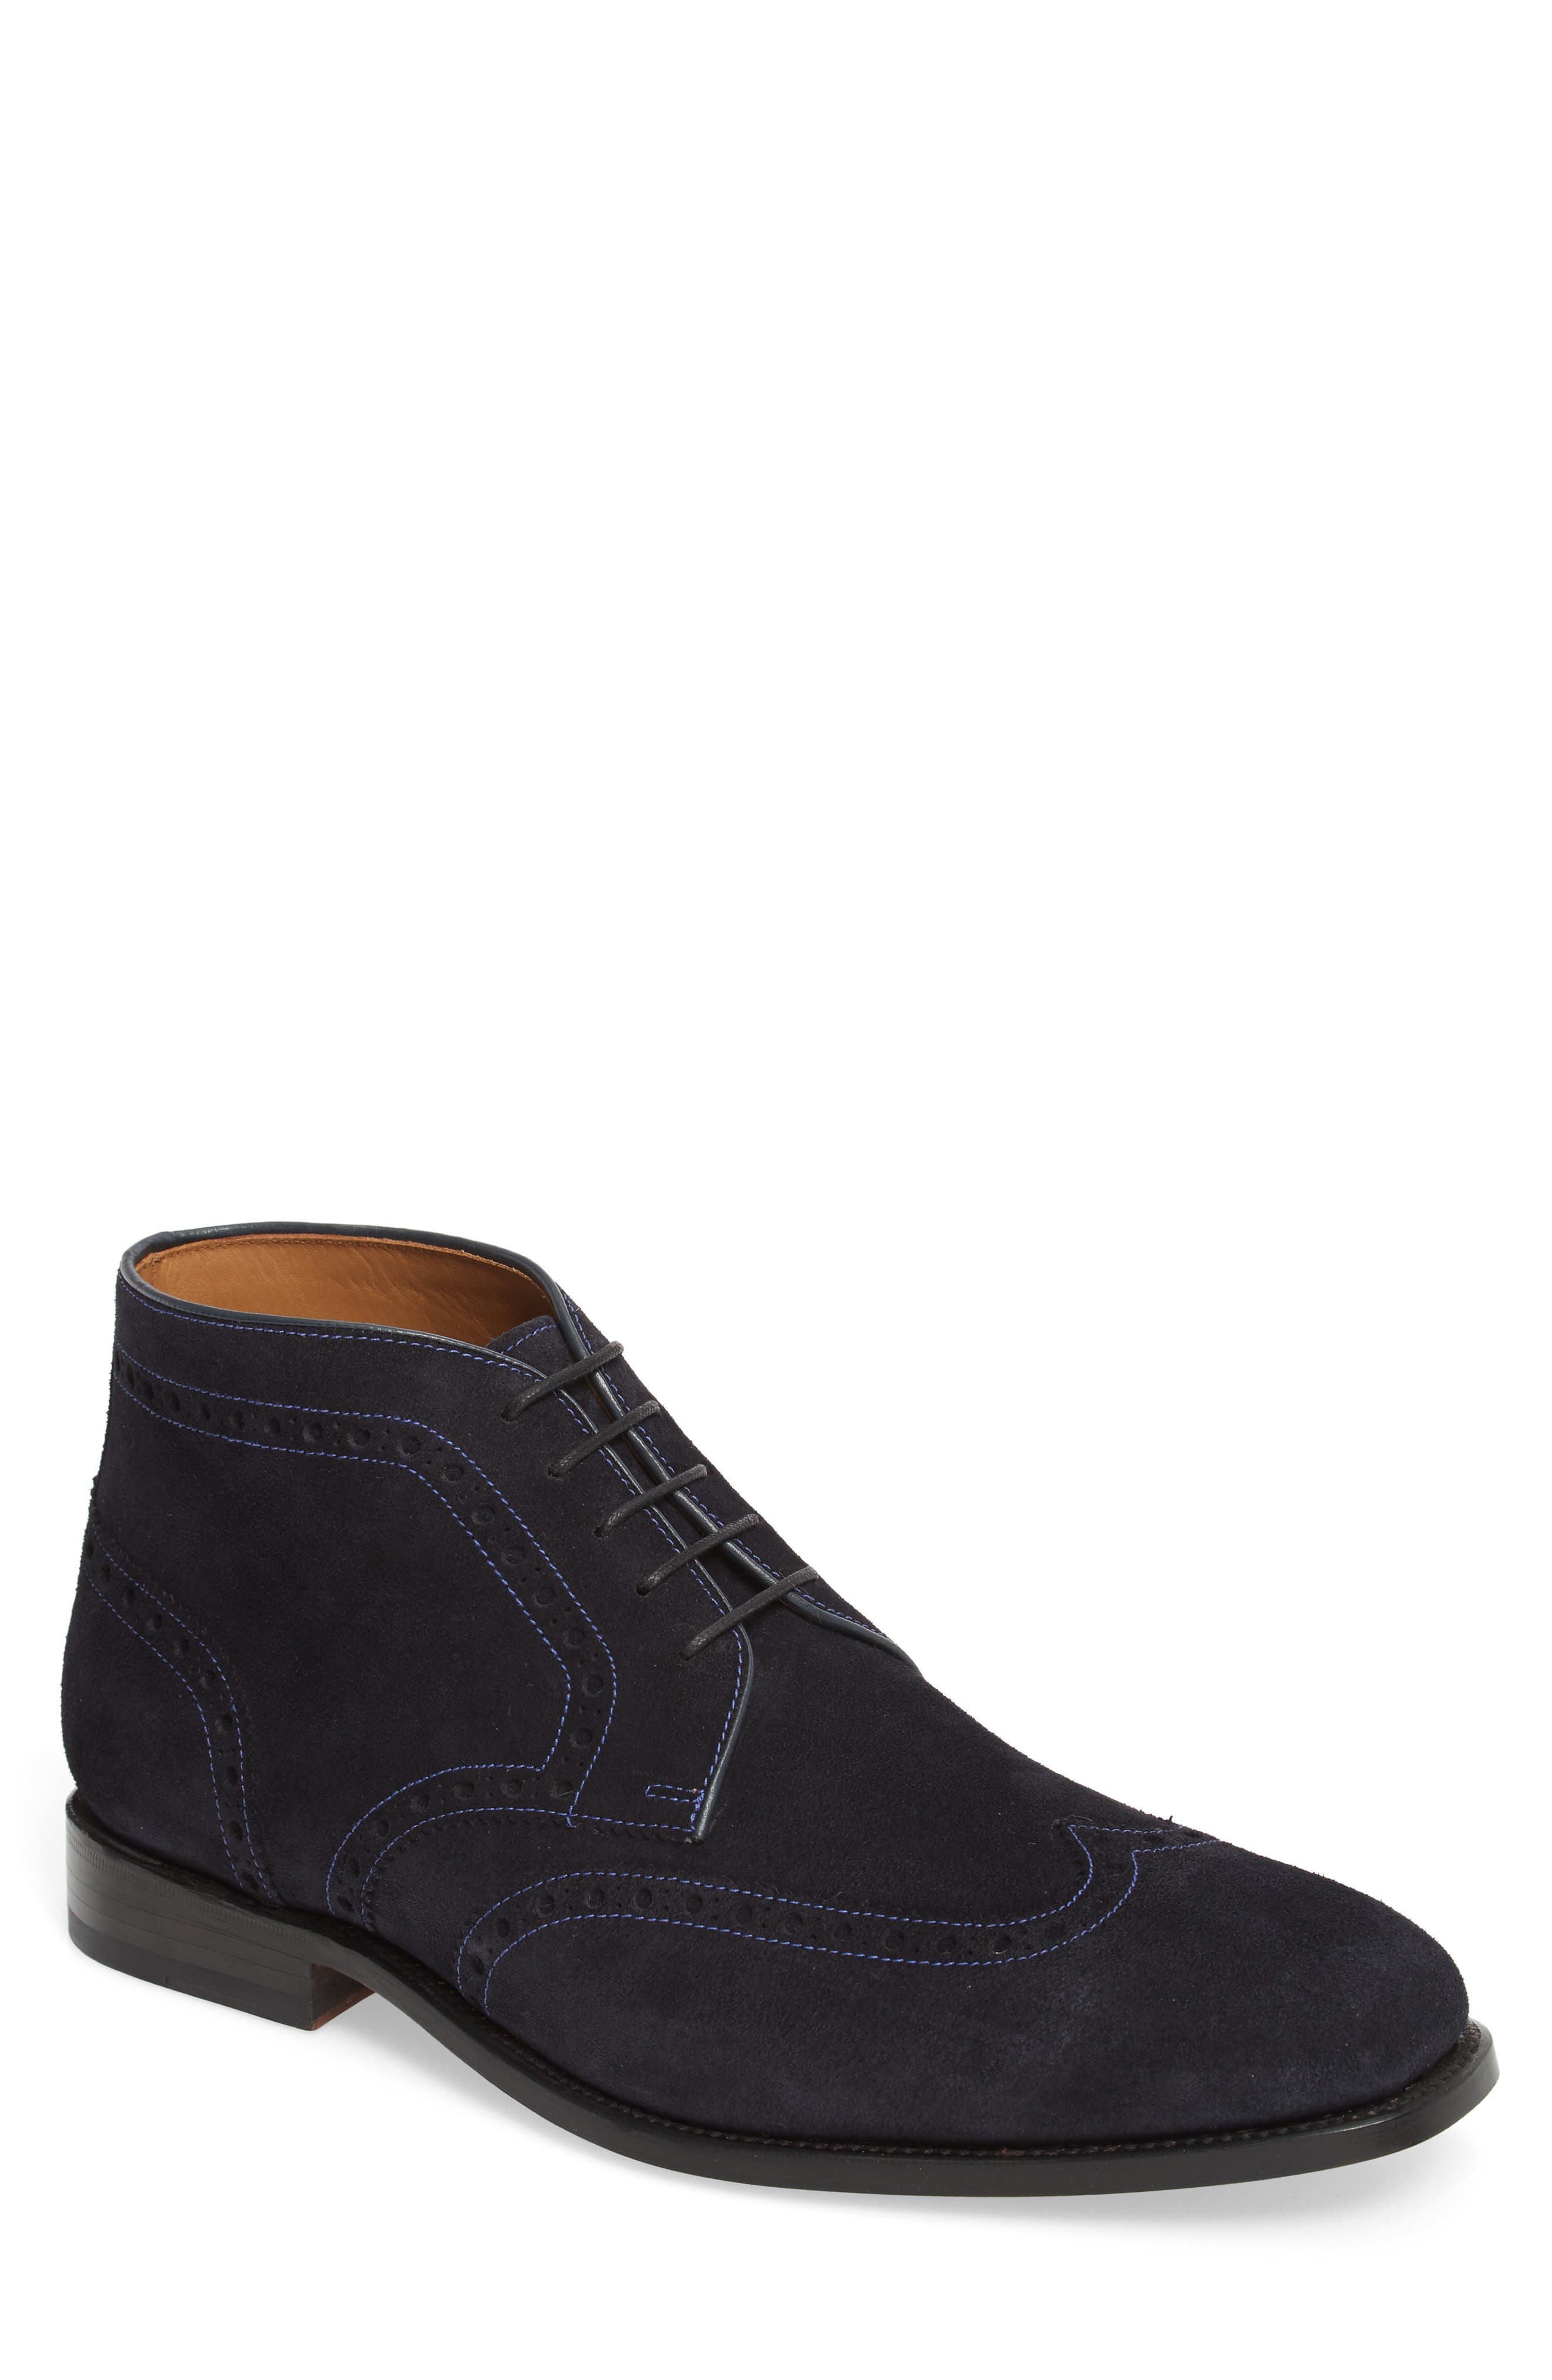 Presidio Wingtip Boot,                             Main thumbnail 1, color,                             NAVY